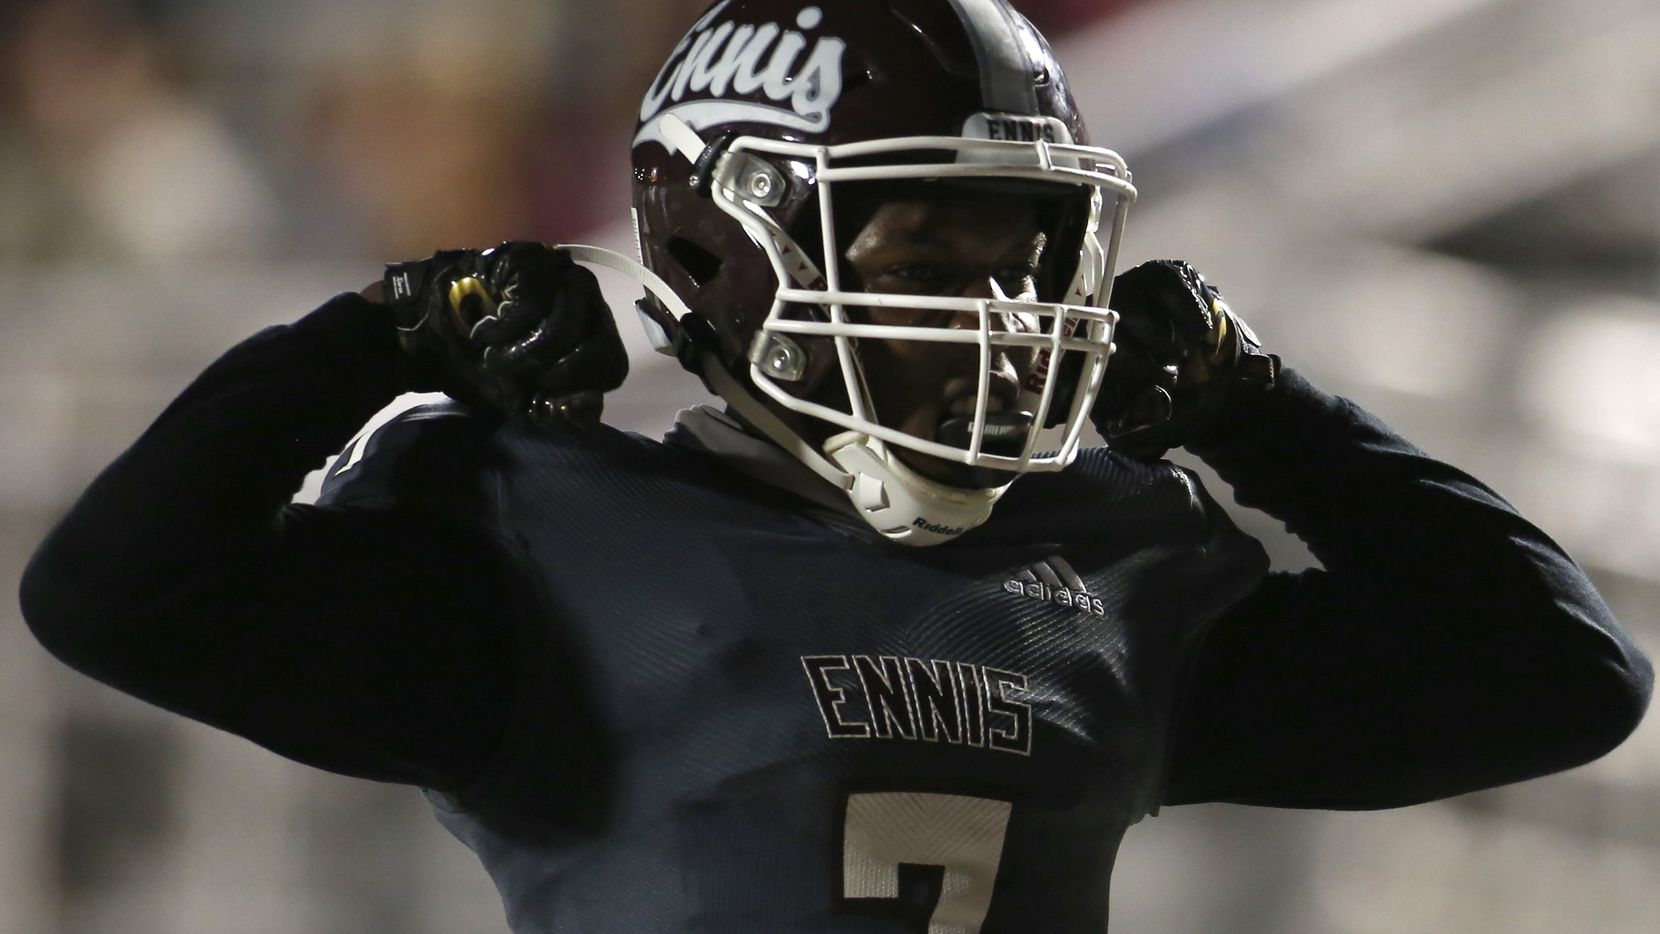 Ennis receiver Laylon Spencer (7) celebrates after pulling in a second quarter receiving touchdown during their game against Mansfield Summit. The two teams played their non-district football game at  Lions Stadium on the campus of Ennis High School in Ennis on October 22, 2020.